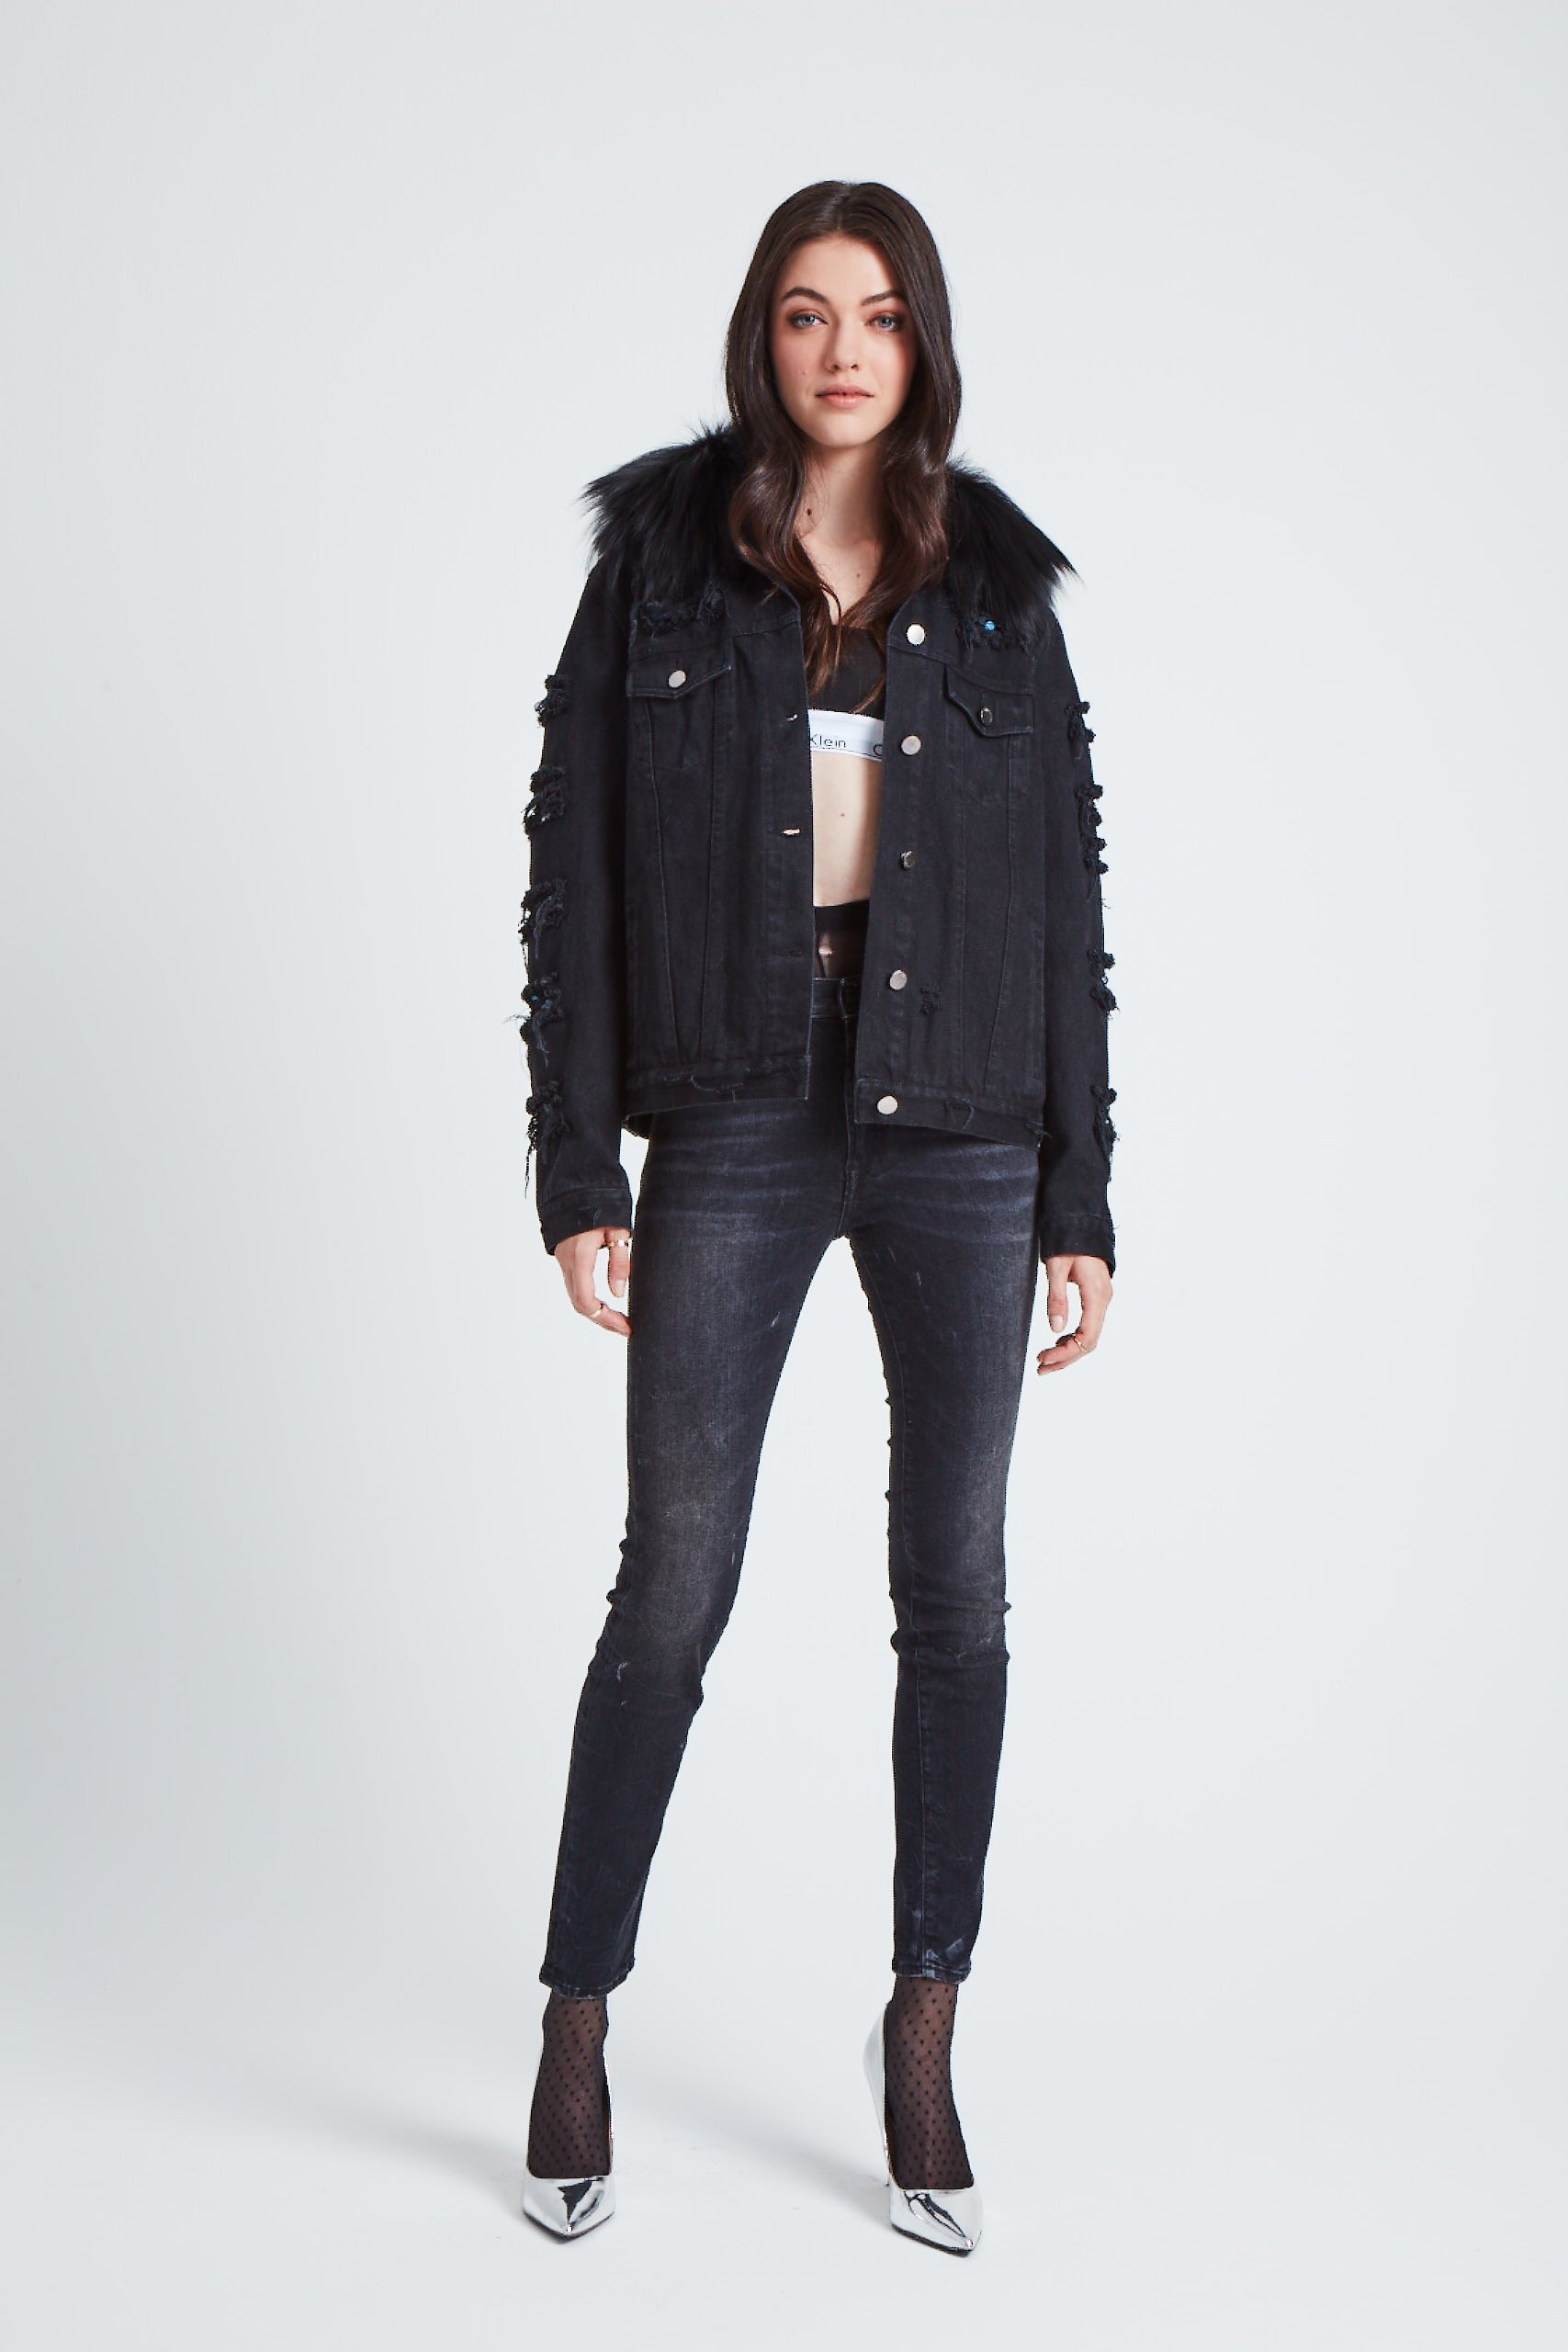 The Parallax Distressed Denim Jacket - Black